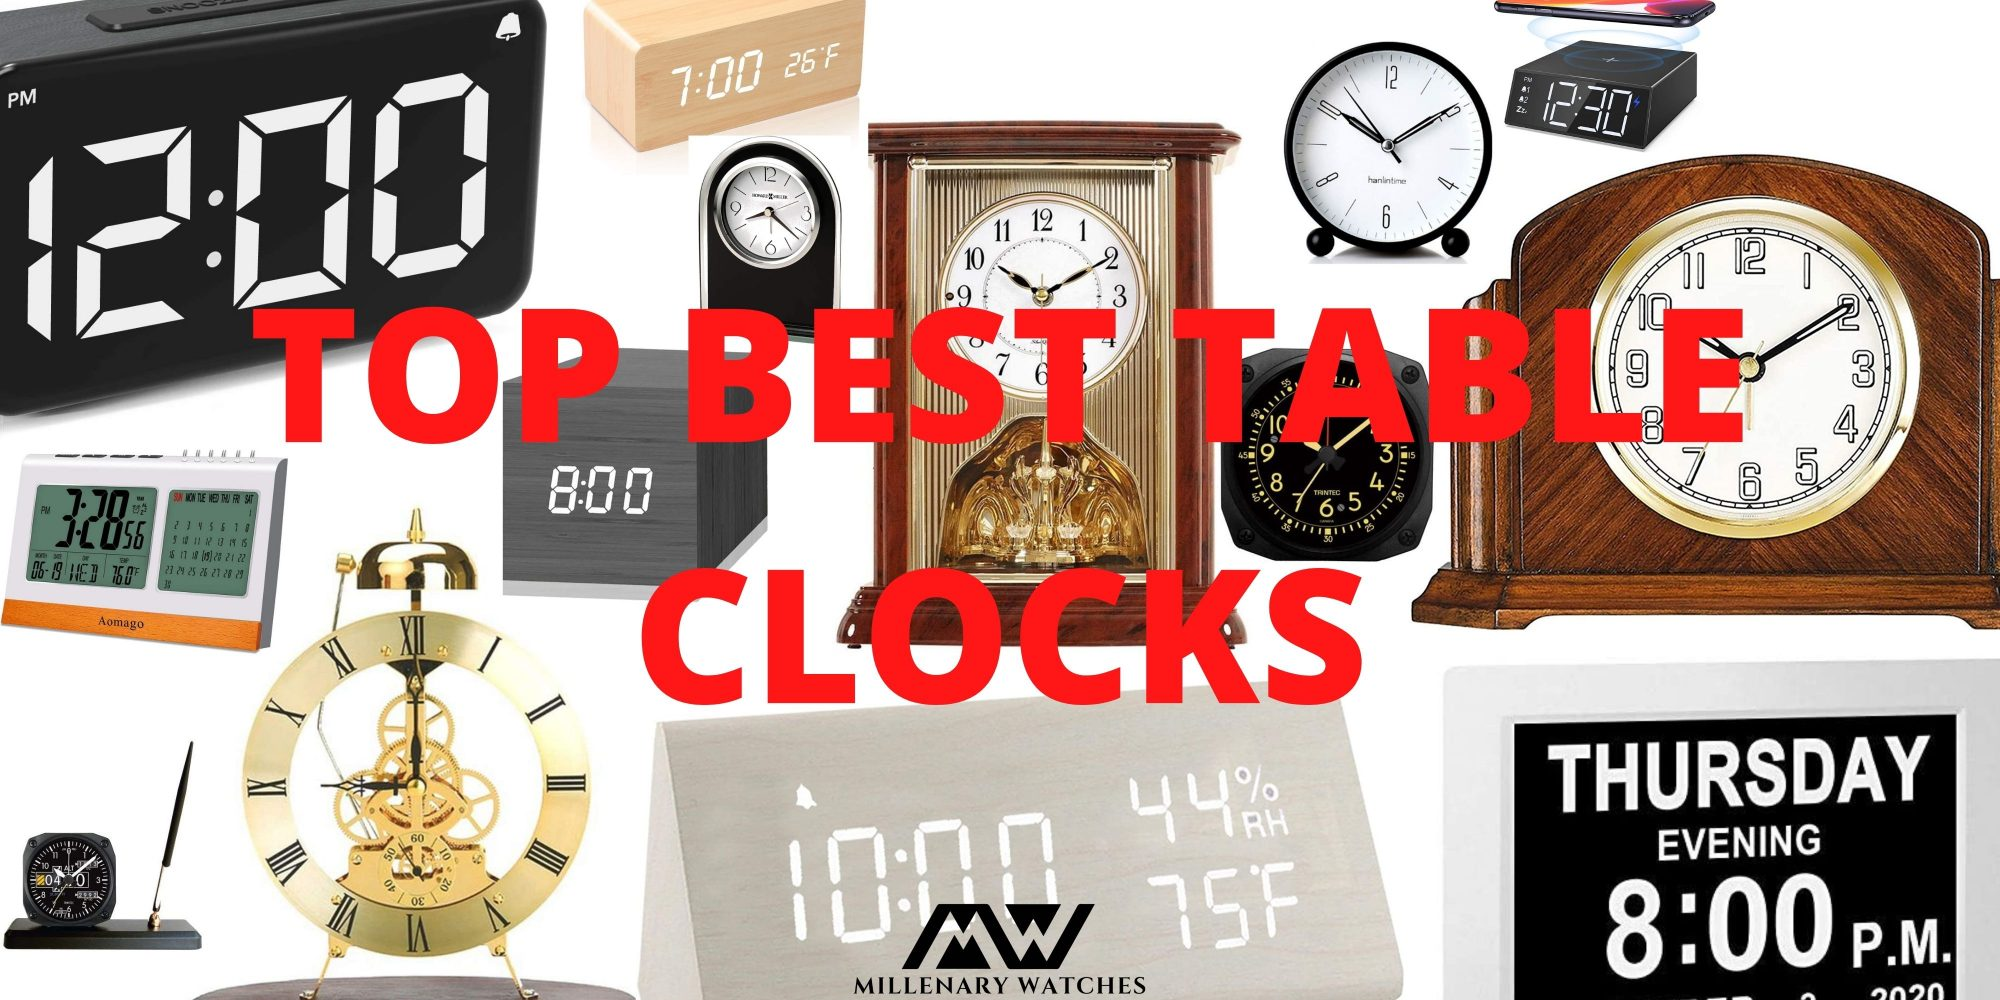 Top 18 Best Desk Clocks [Guide & Review]